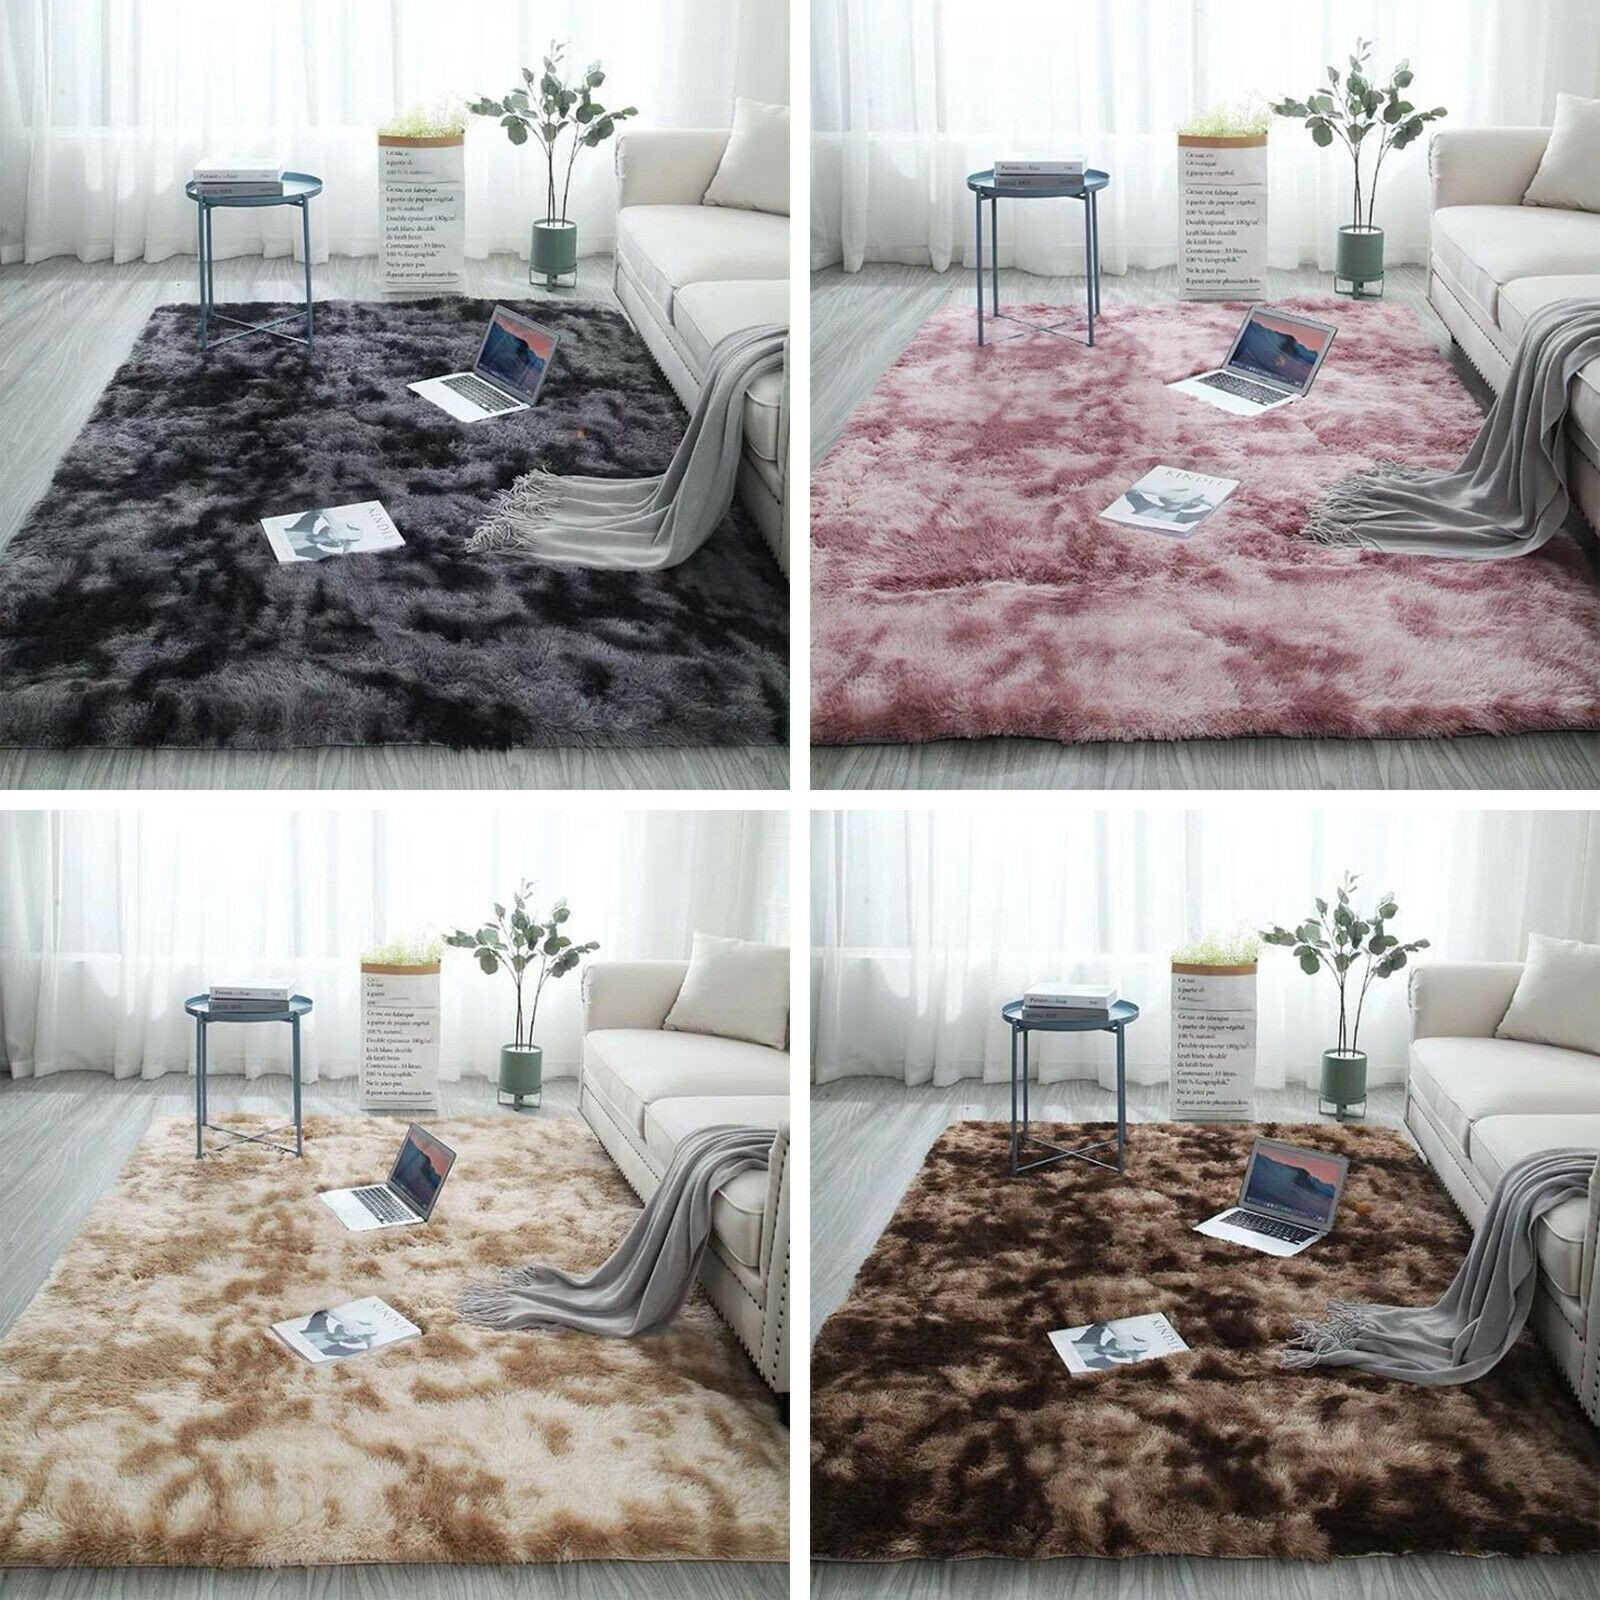 Soft Rugs for Bedroom New Plush Floor Carpets soft Fluffy area Rug Mat Shaggy